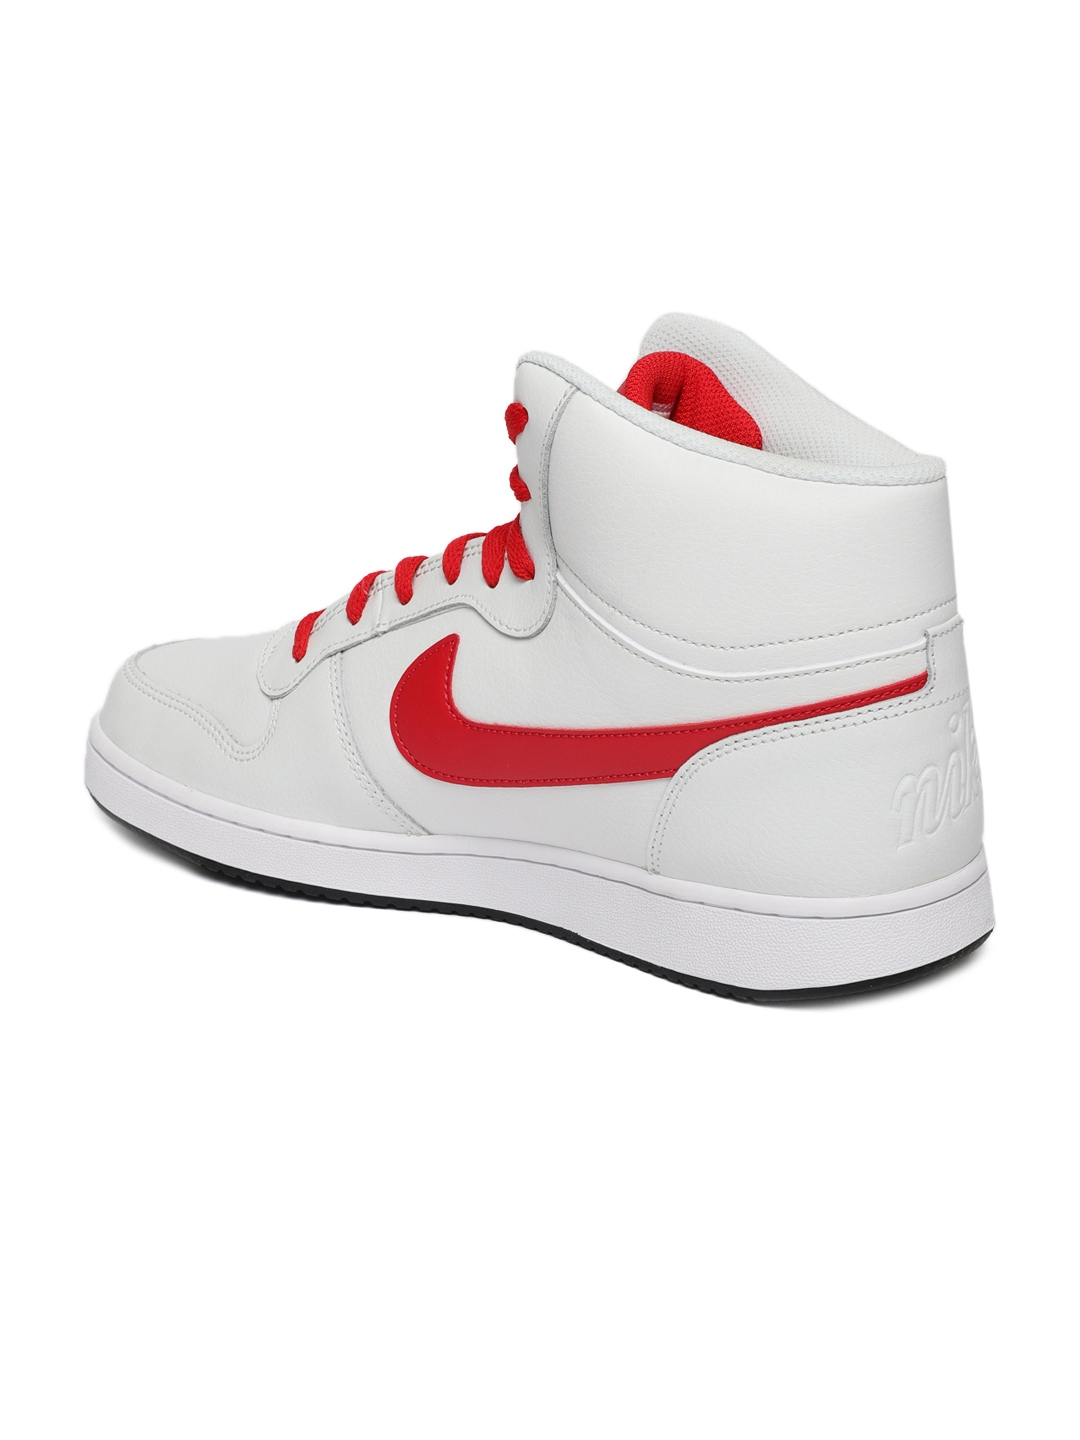 best website e825a 145cf Nike Men White Solid EBERNON Leather Mid-Top Sneakers